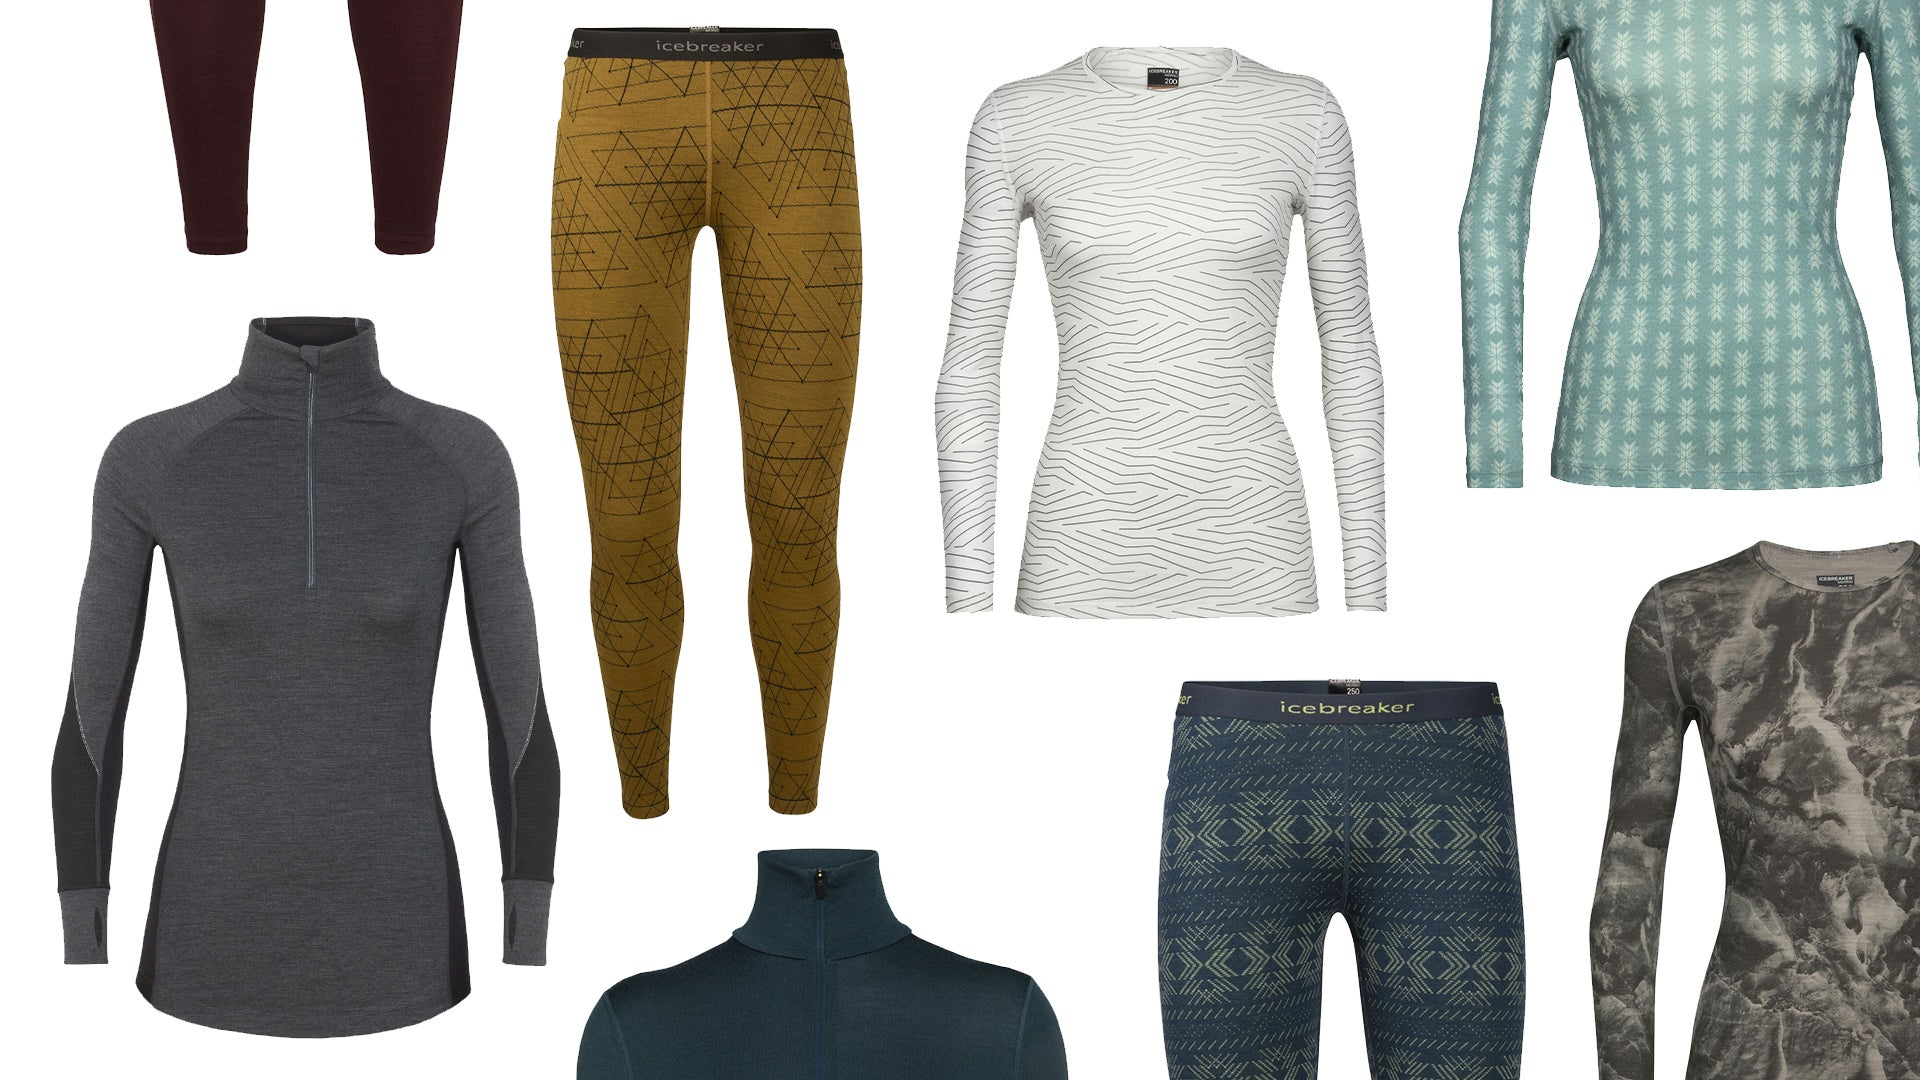 Assorted color and patterns of women's wool baselayers on a white background.